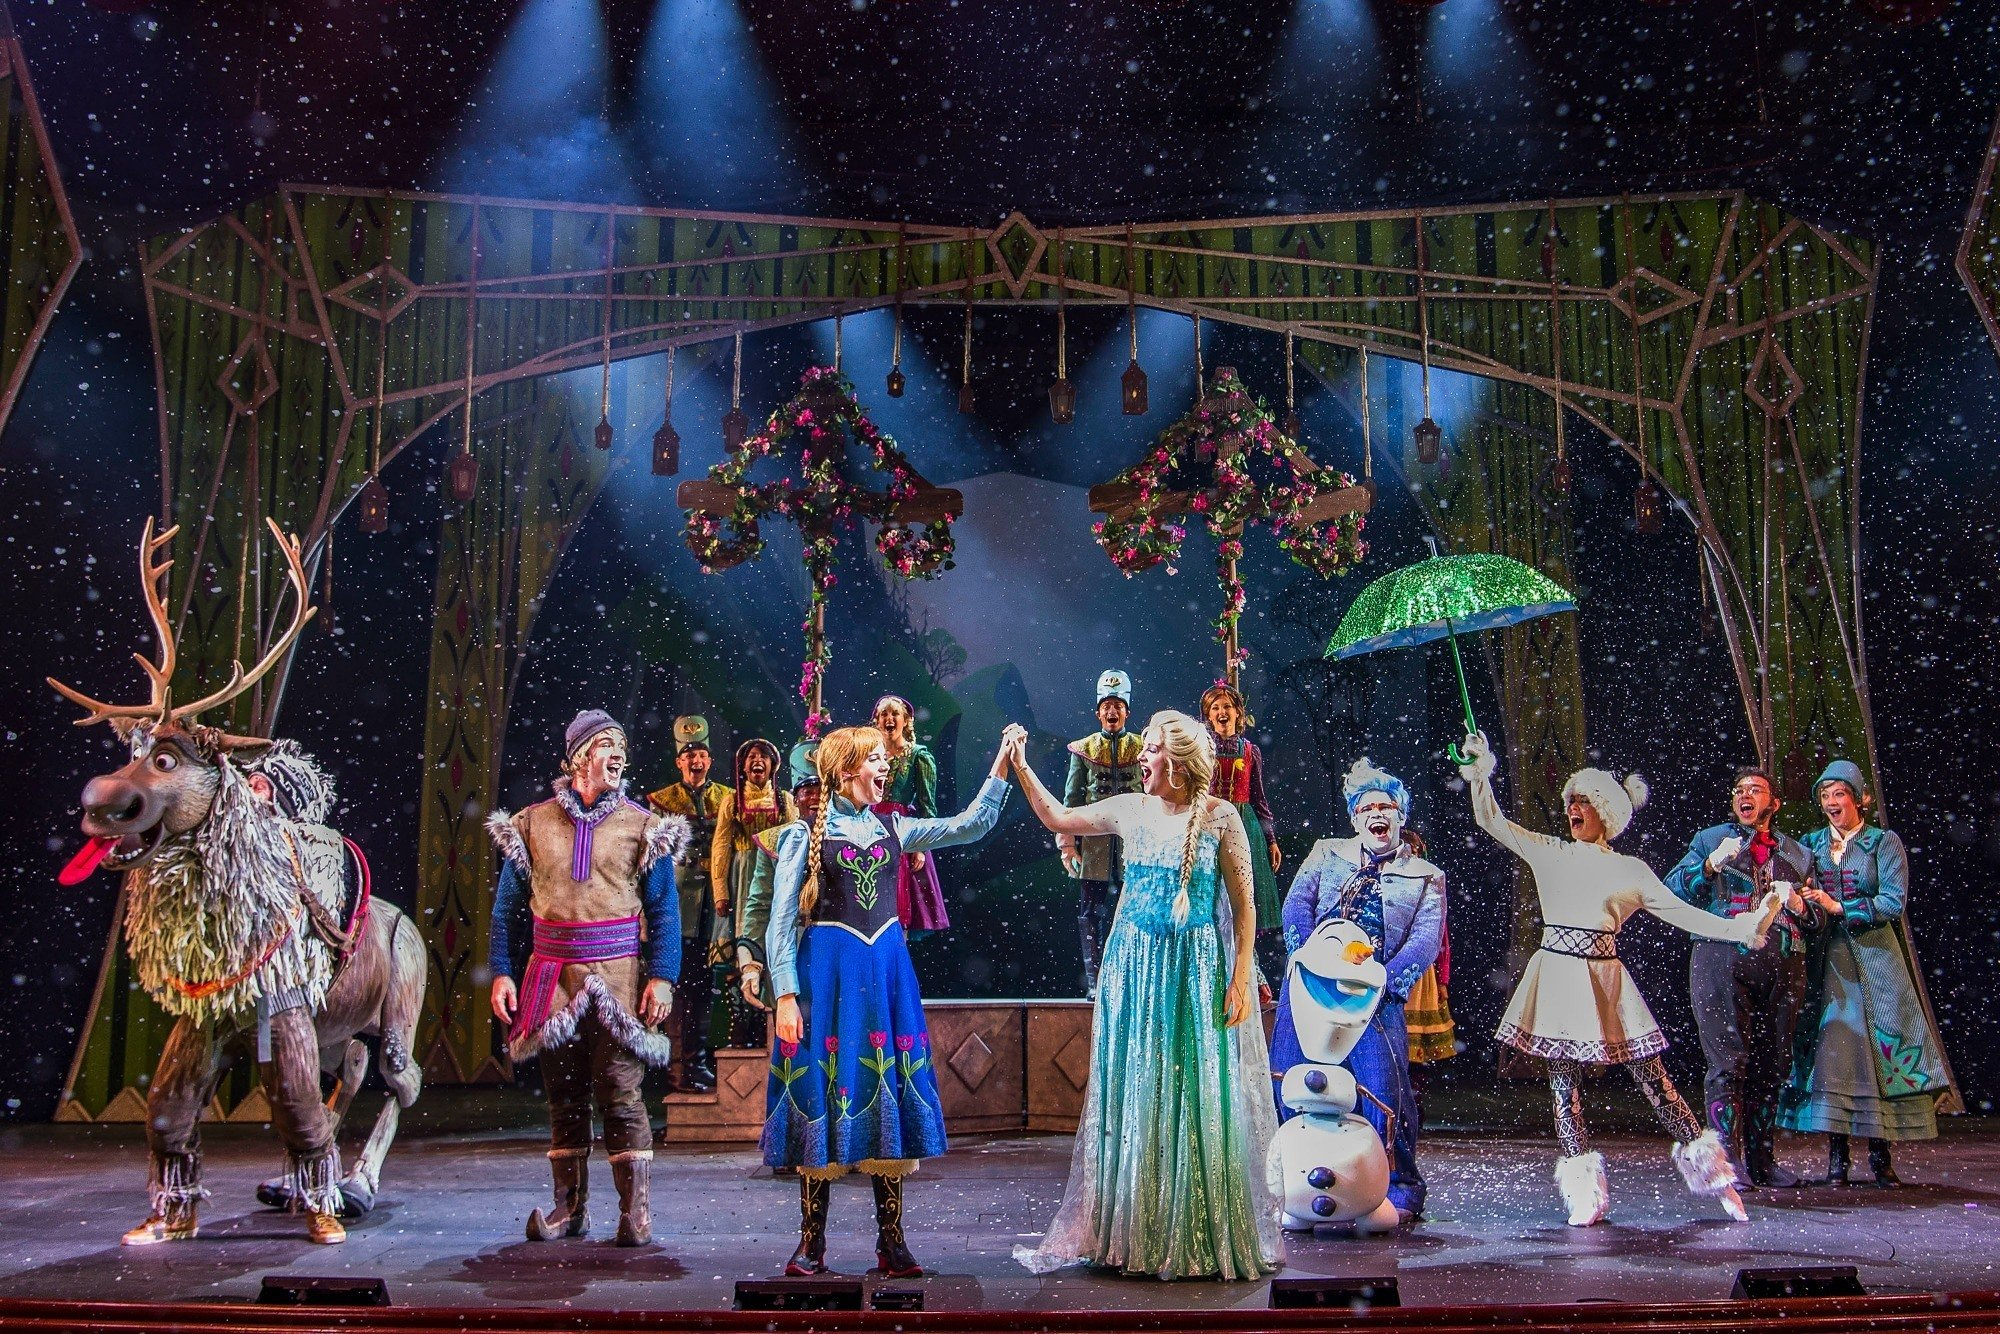 Frozen, A Musical Spectacular is a show on the Disney Wonder ship which is the Disney cruise departing San Diego.